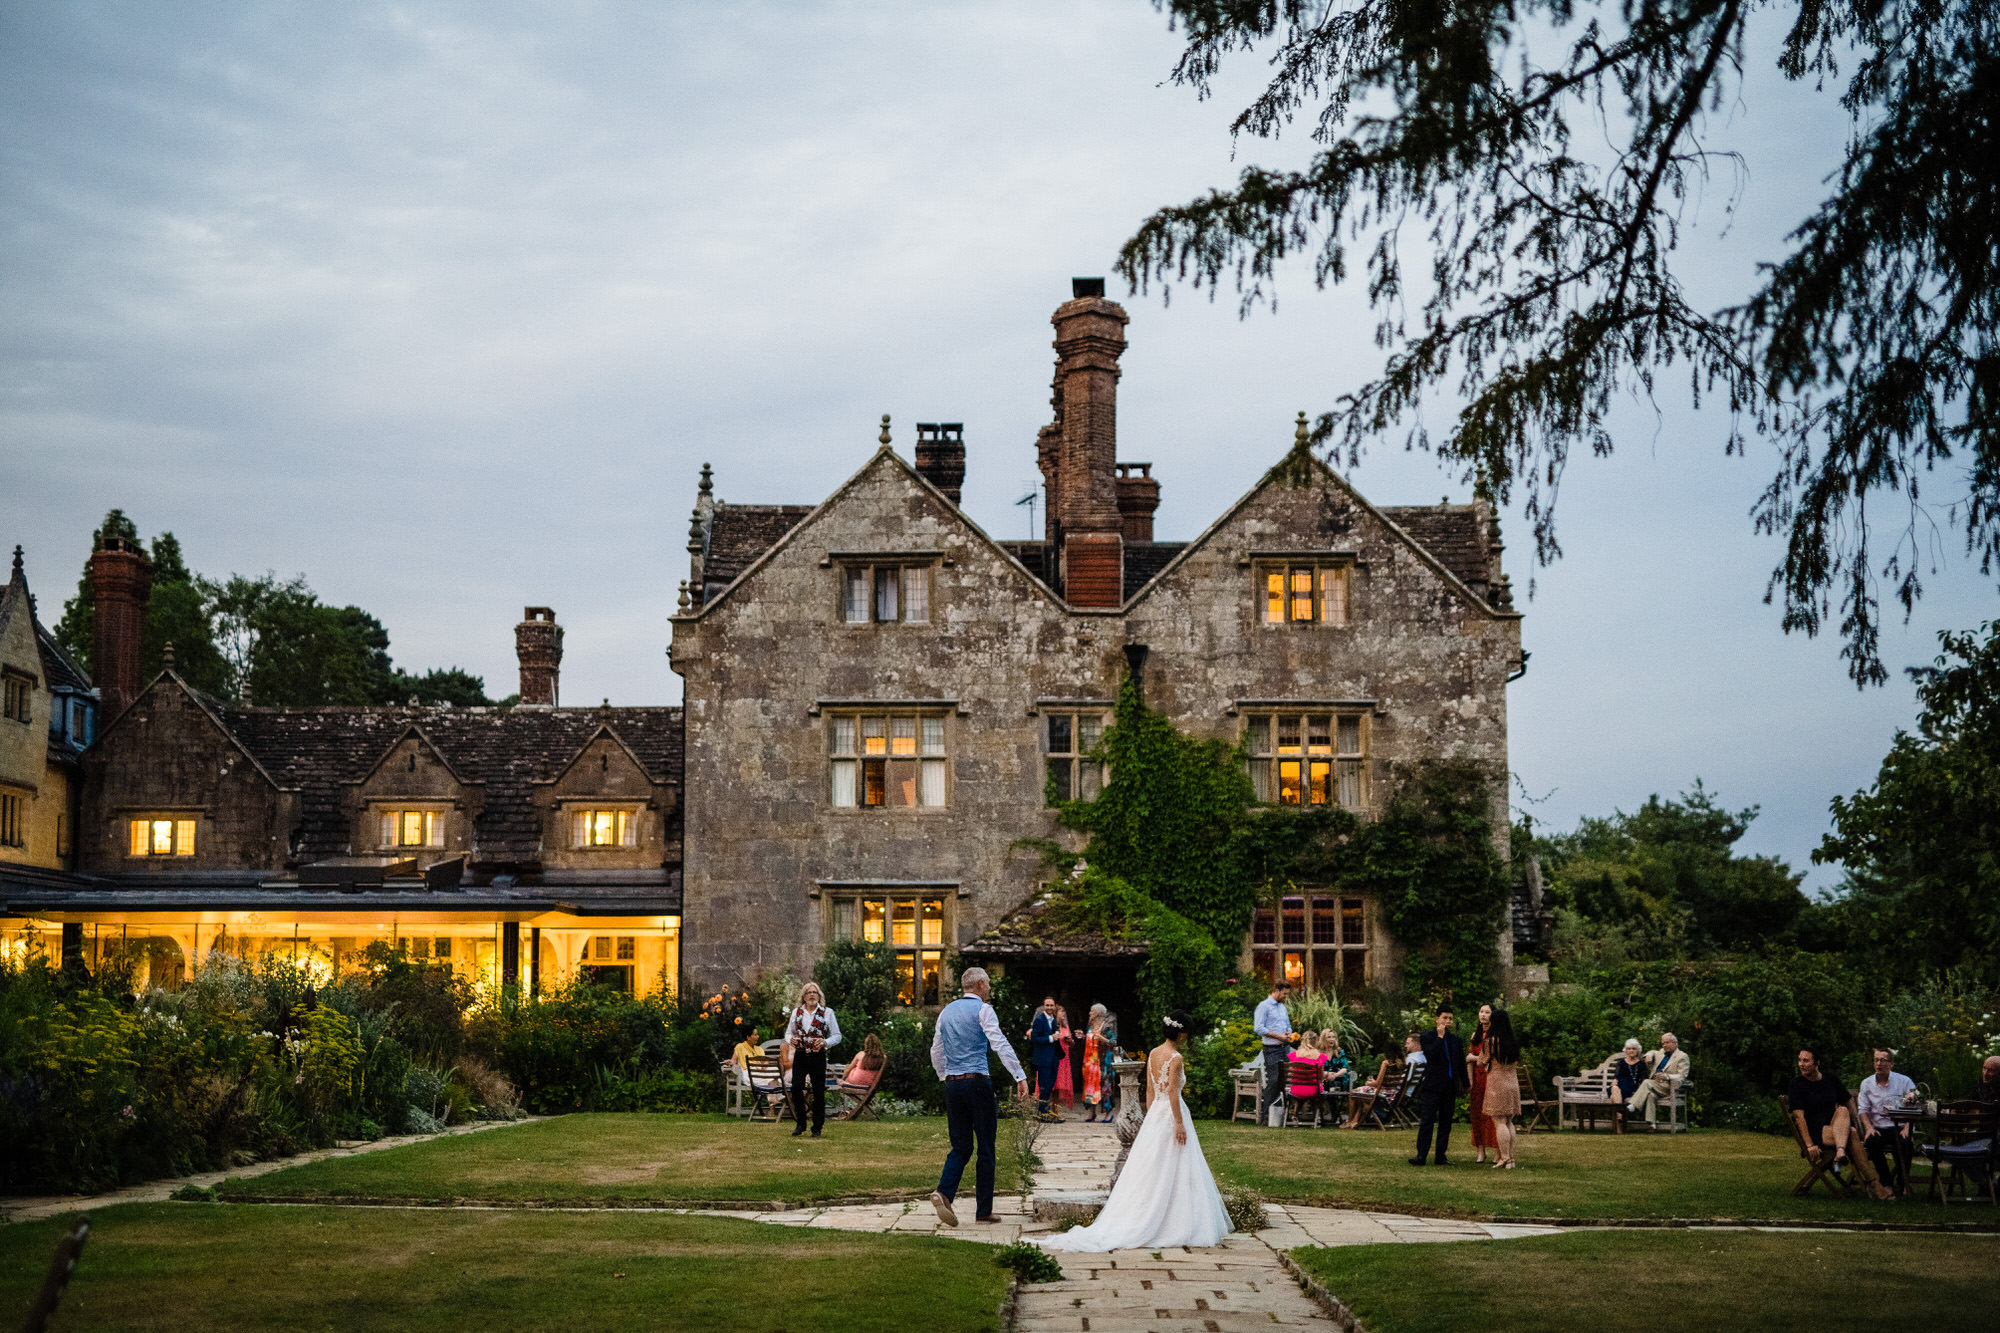 Gravetye Manor wedding photographer